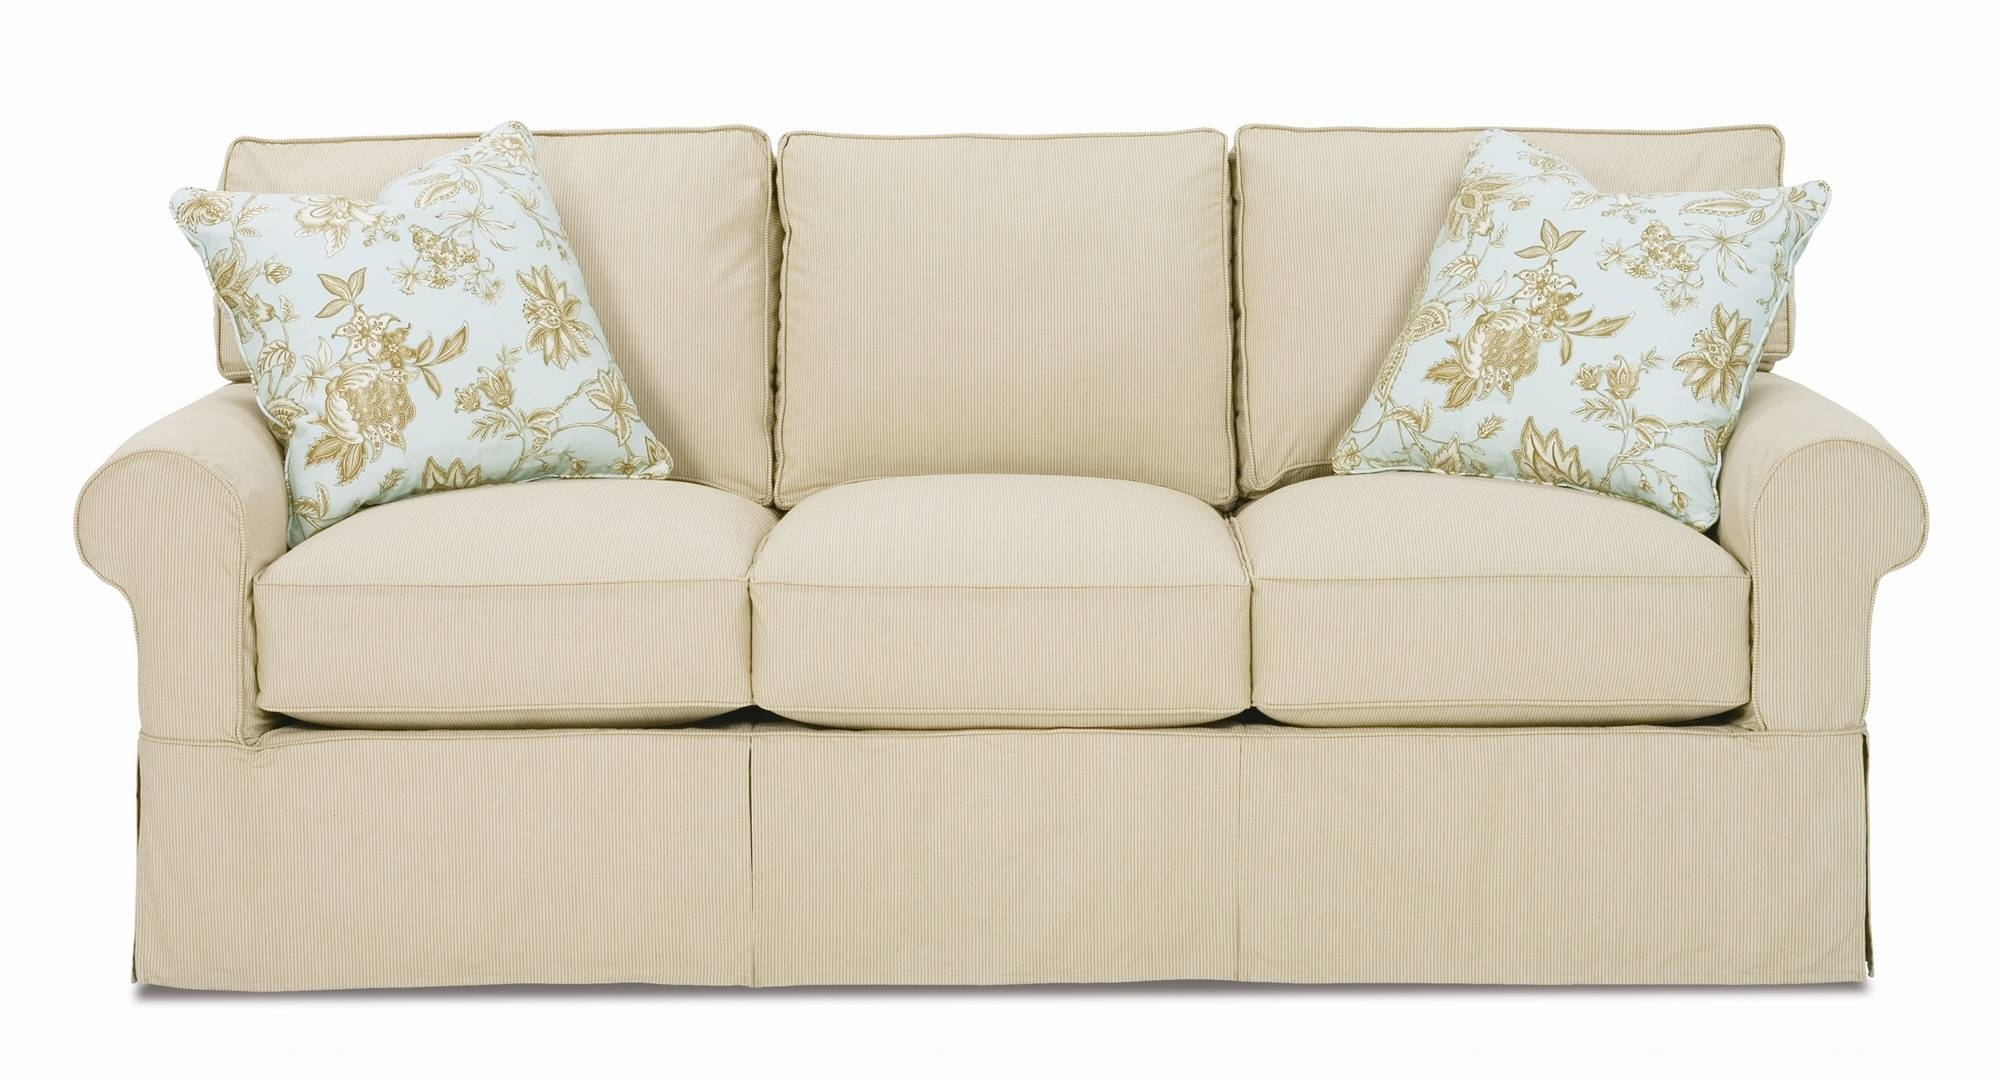 Quality Interiors | Sofa Slipcover | Chair Slipcovers pertaining to Sofa And Chair Slipcovers (Image 14 of 15)